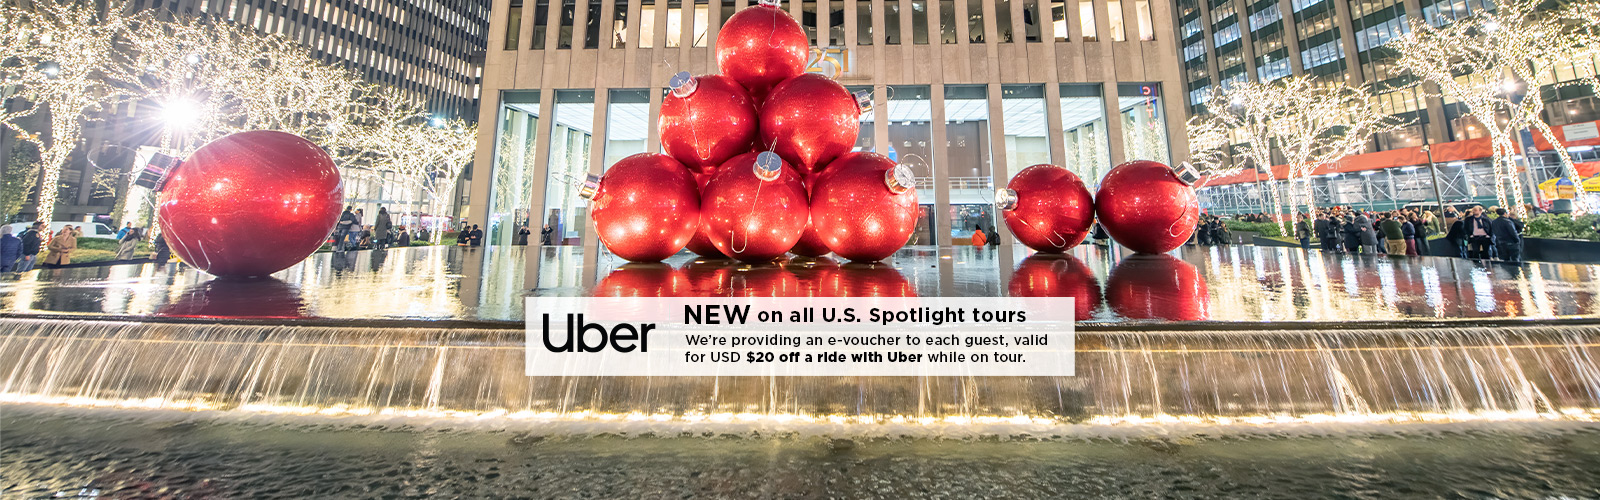 https://i.gocollette.com/tour-media-manager/tours/north-america/usa/83/packages/master-package_holiday/top-carousel/spotlightnycholiday_uber_hero.jpg